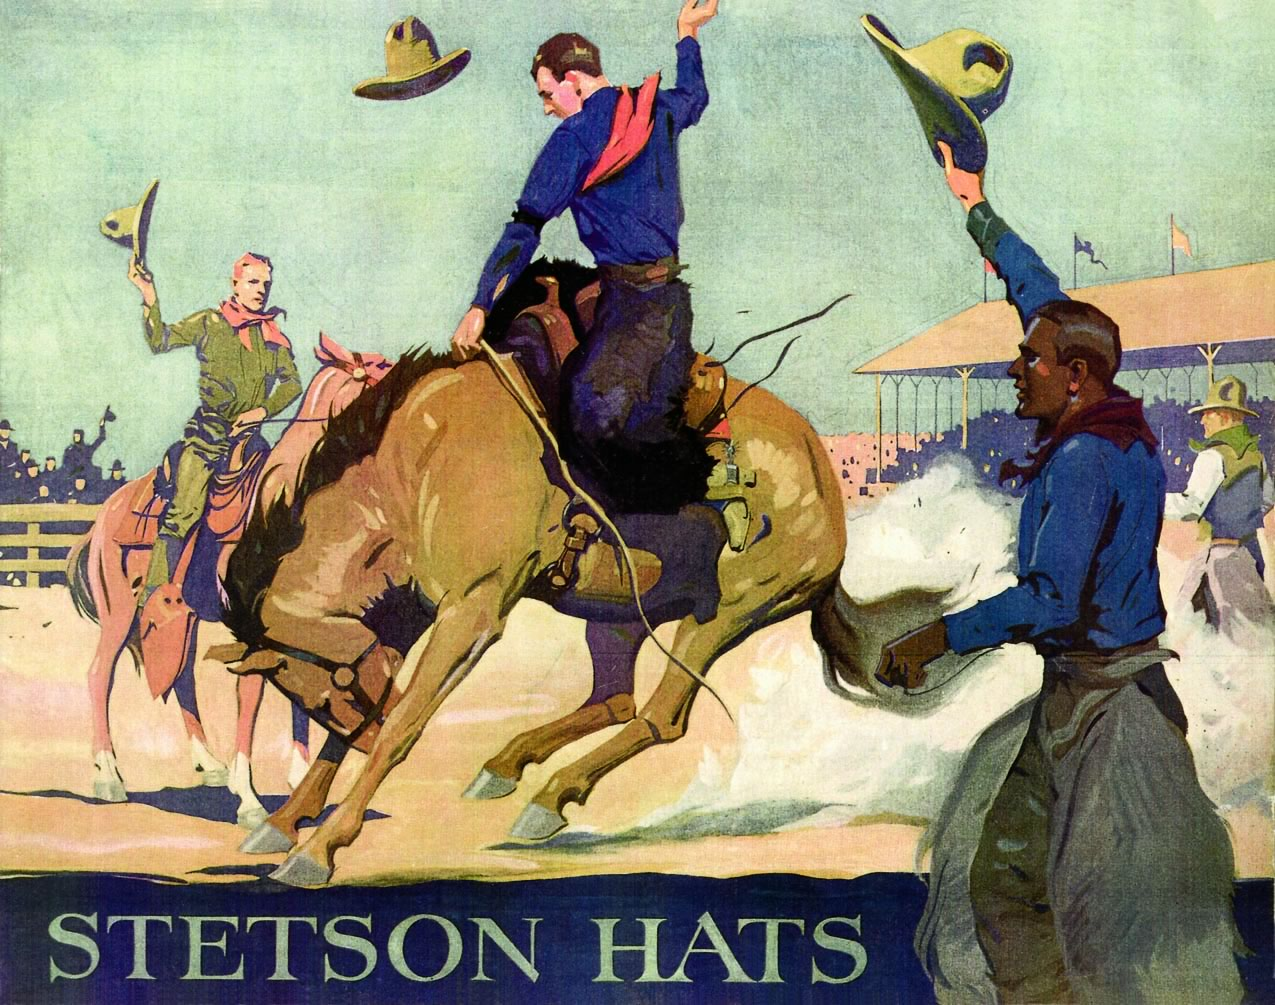 Stetson ad featuring cowboys